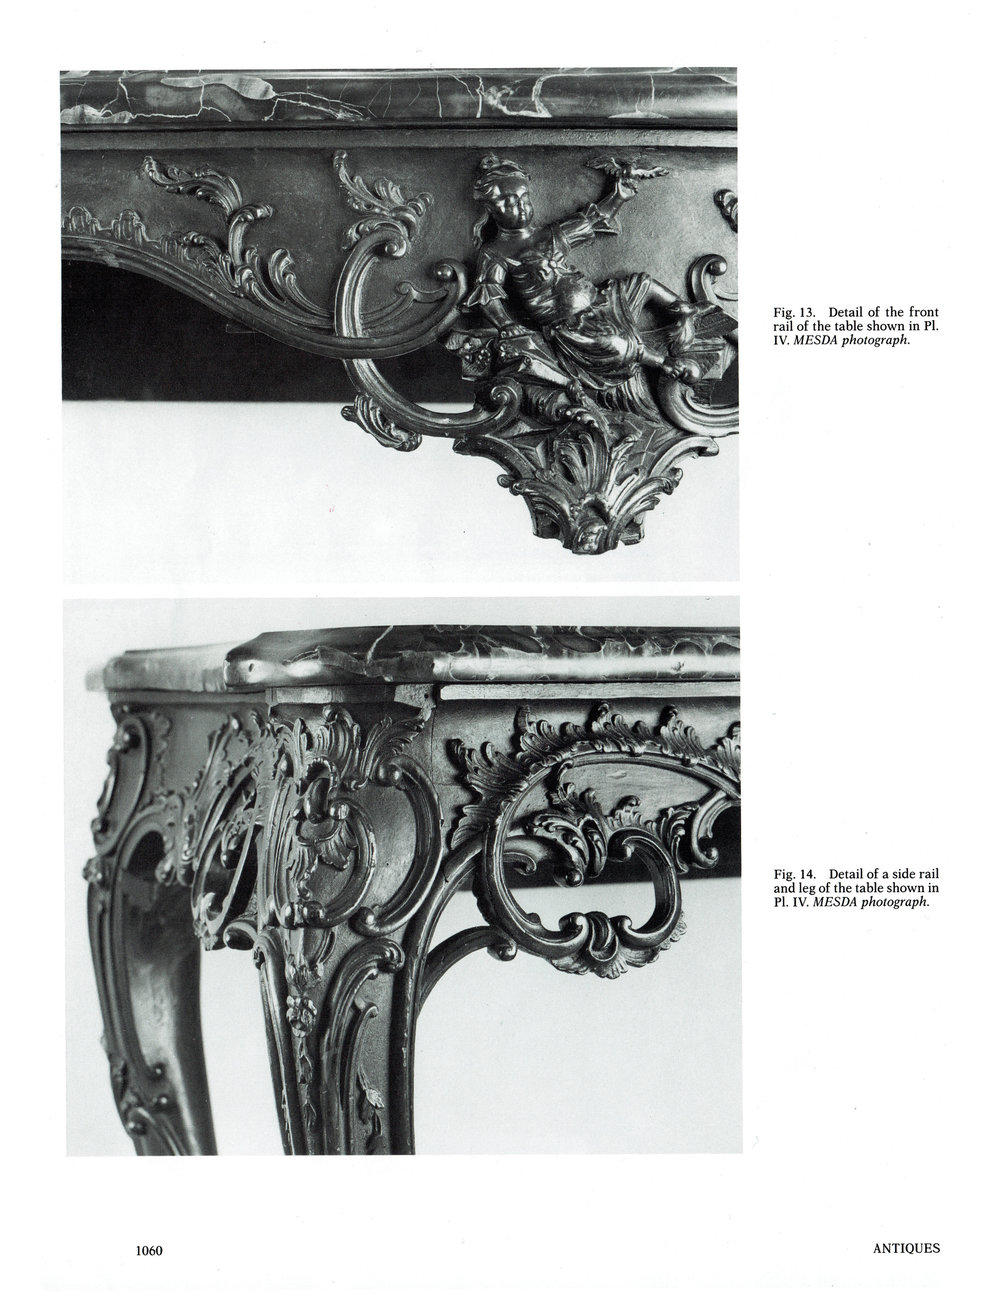 2018.01.16 CPF Antiques Article 18 - Pg1060.jpg